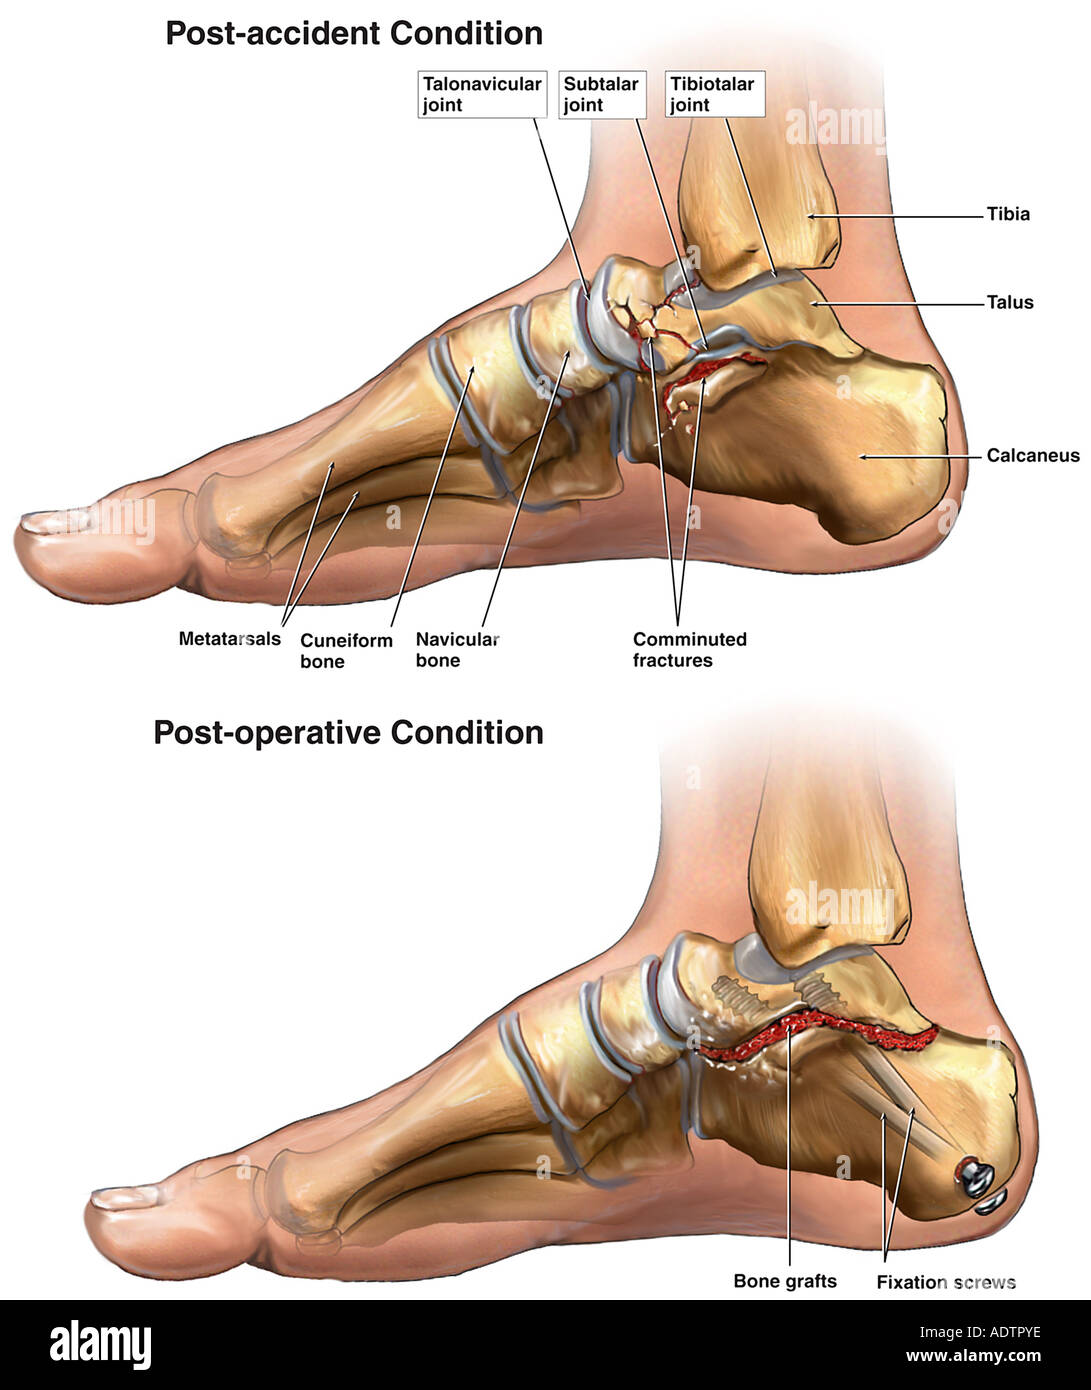 Right Foot Fractures with Surgical Repairs - Stock Image